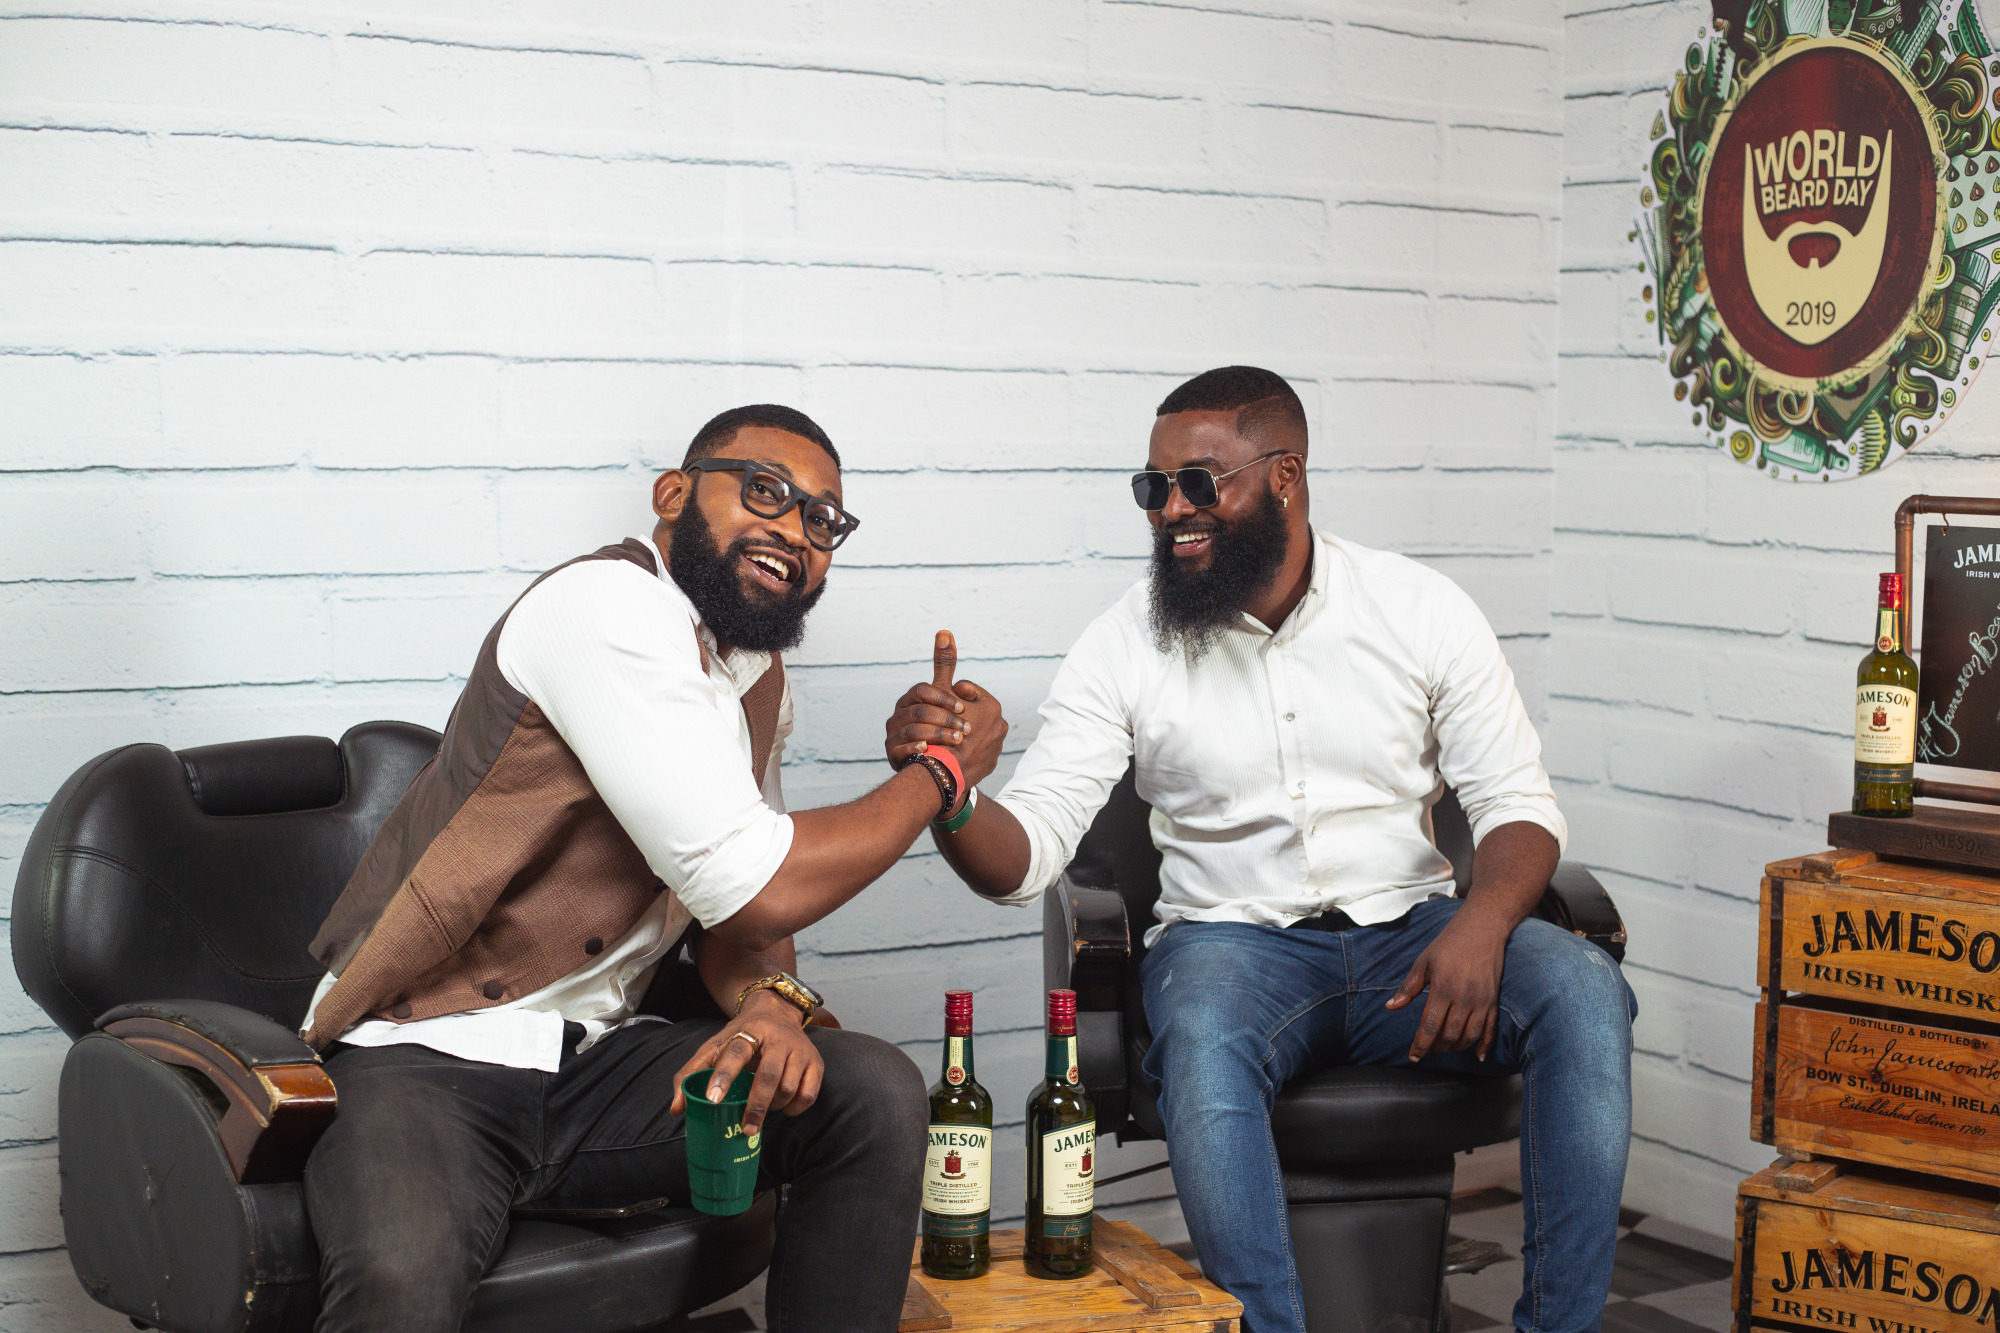 Bearded Brothers boding over Jameson cocktails